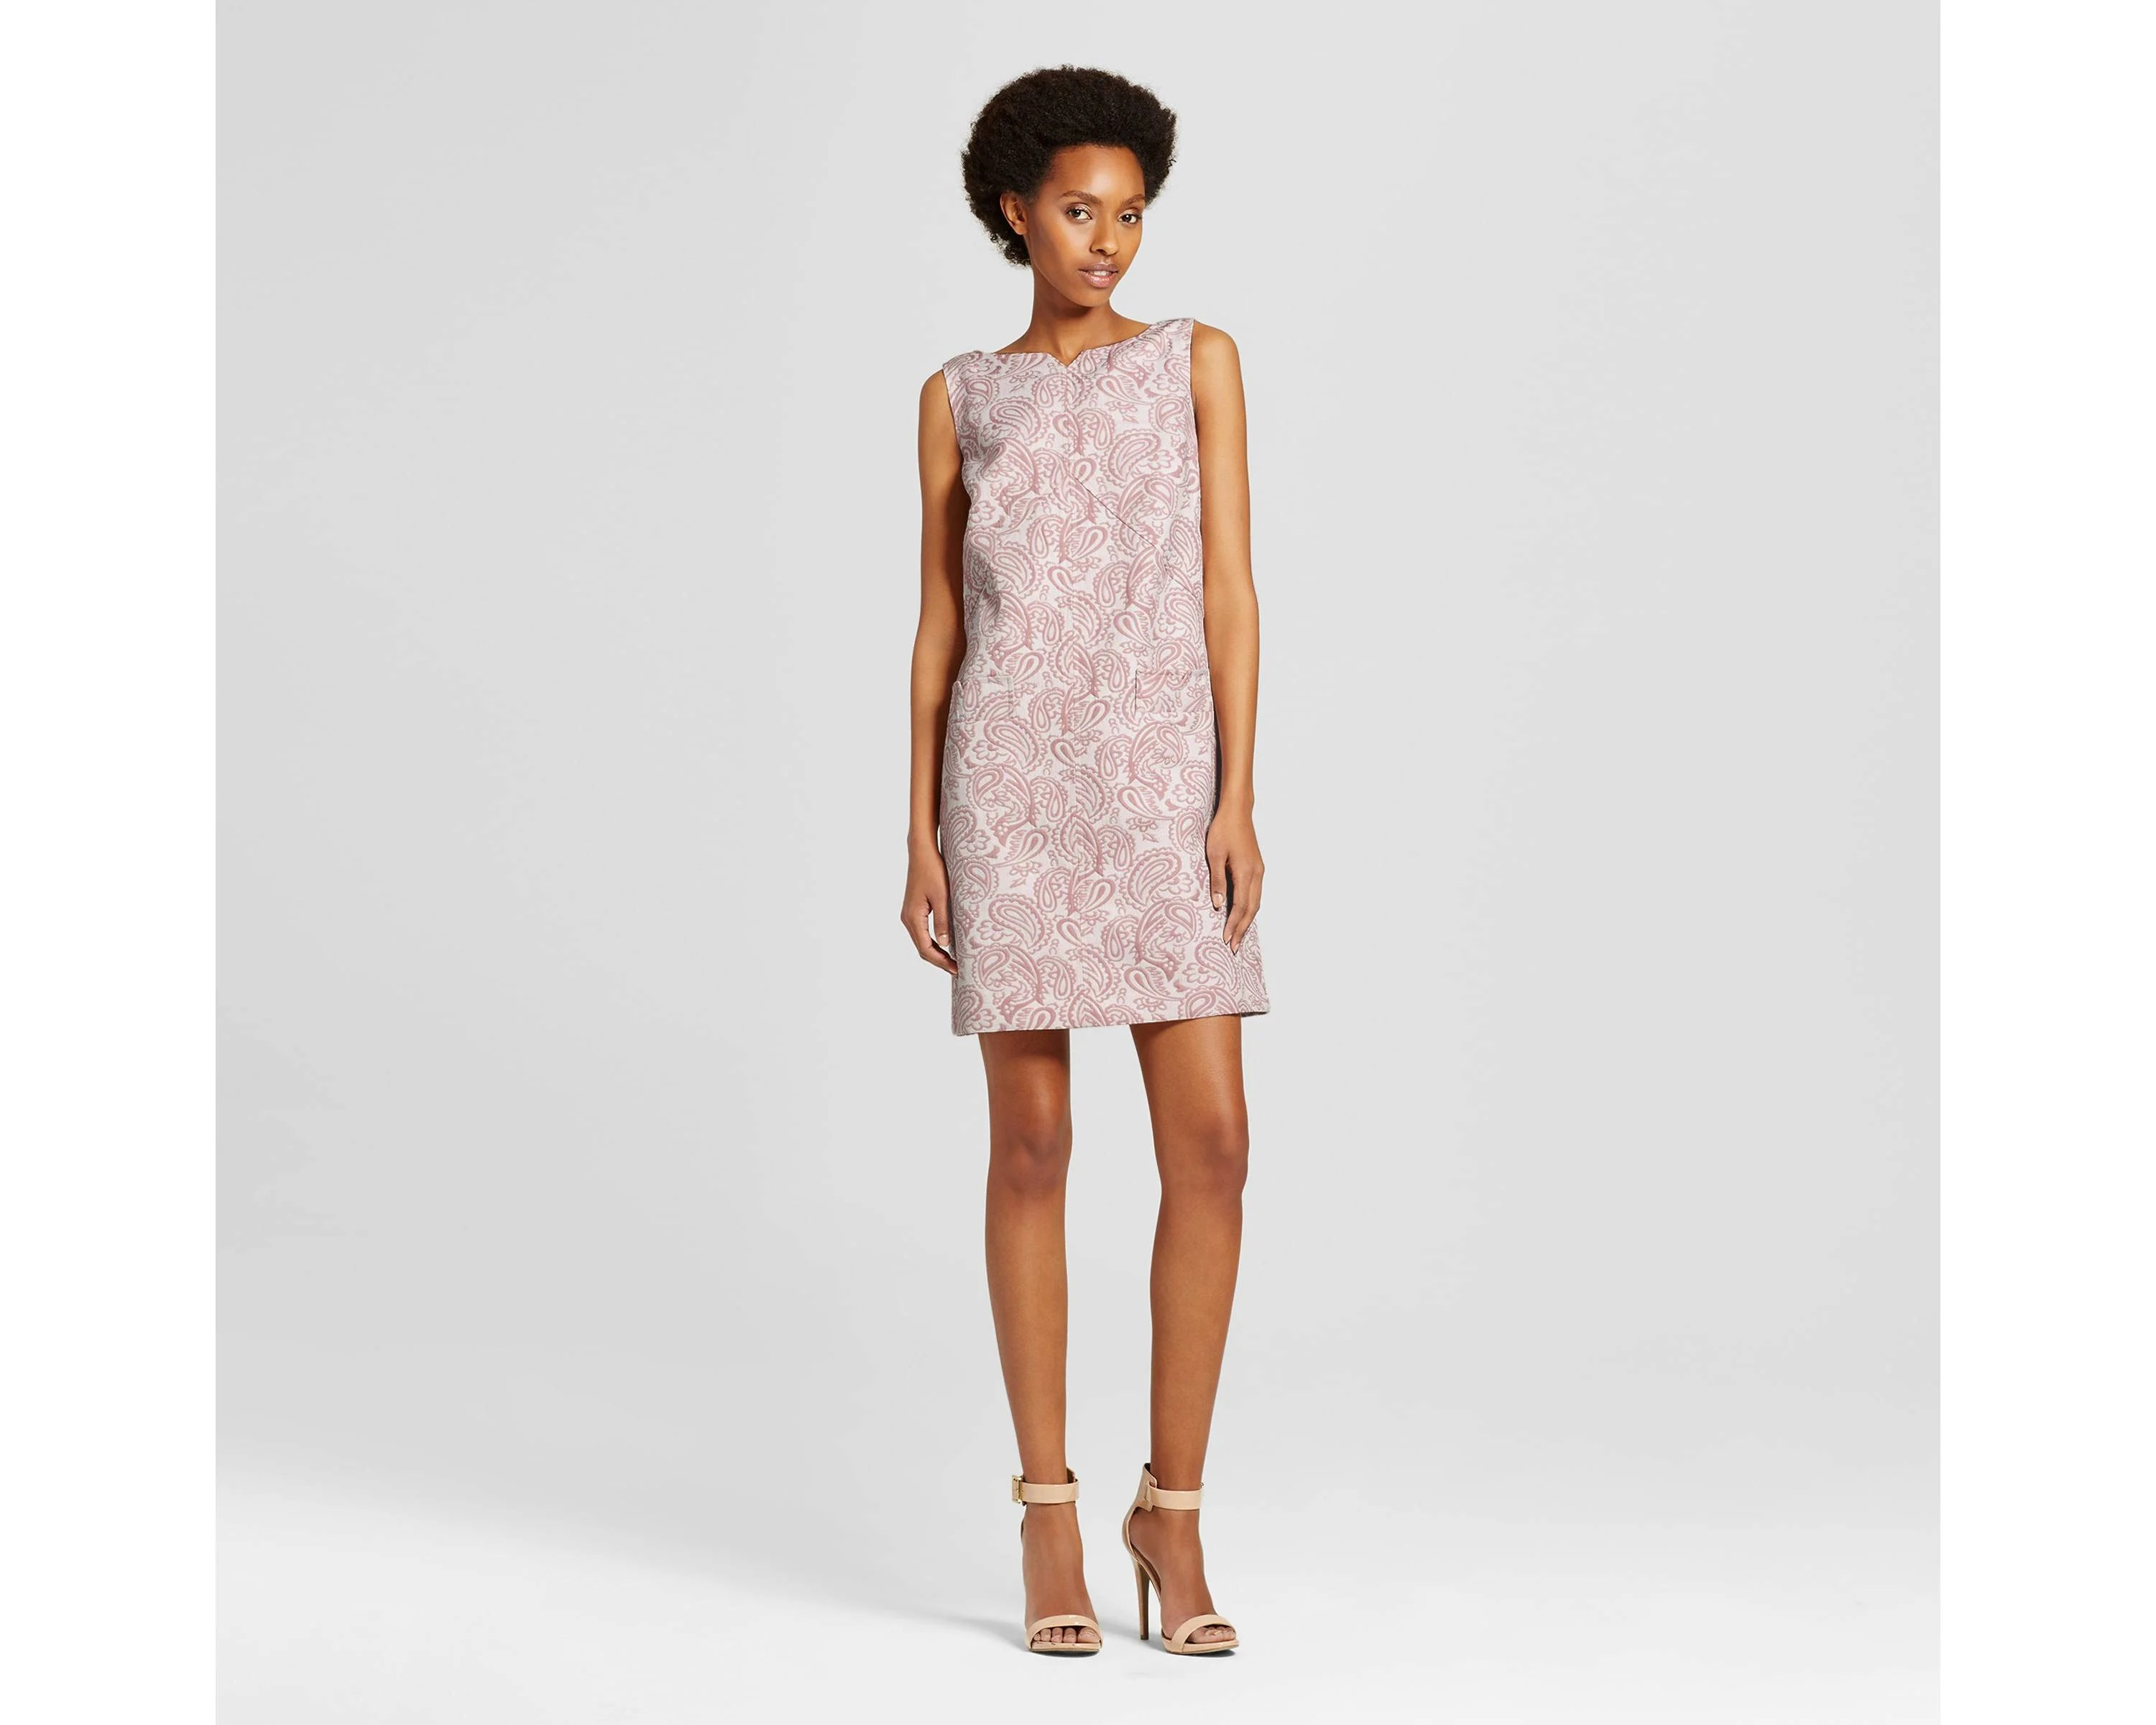 Blush Floral Jacquard Shift Dress with Pockets